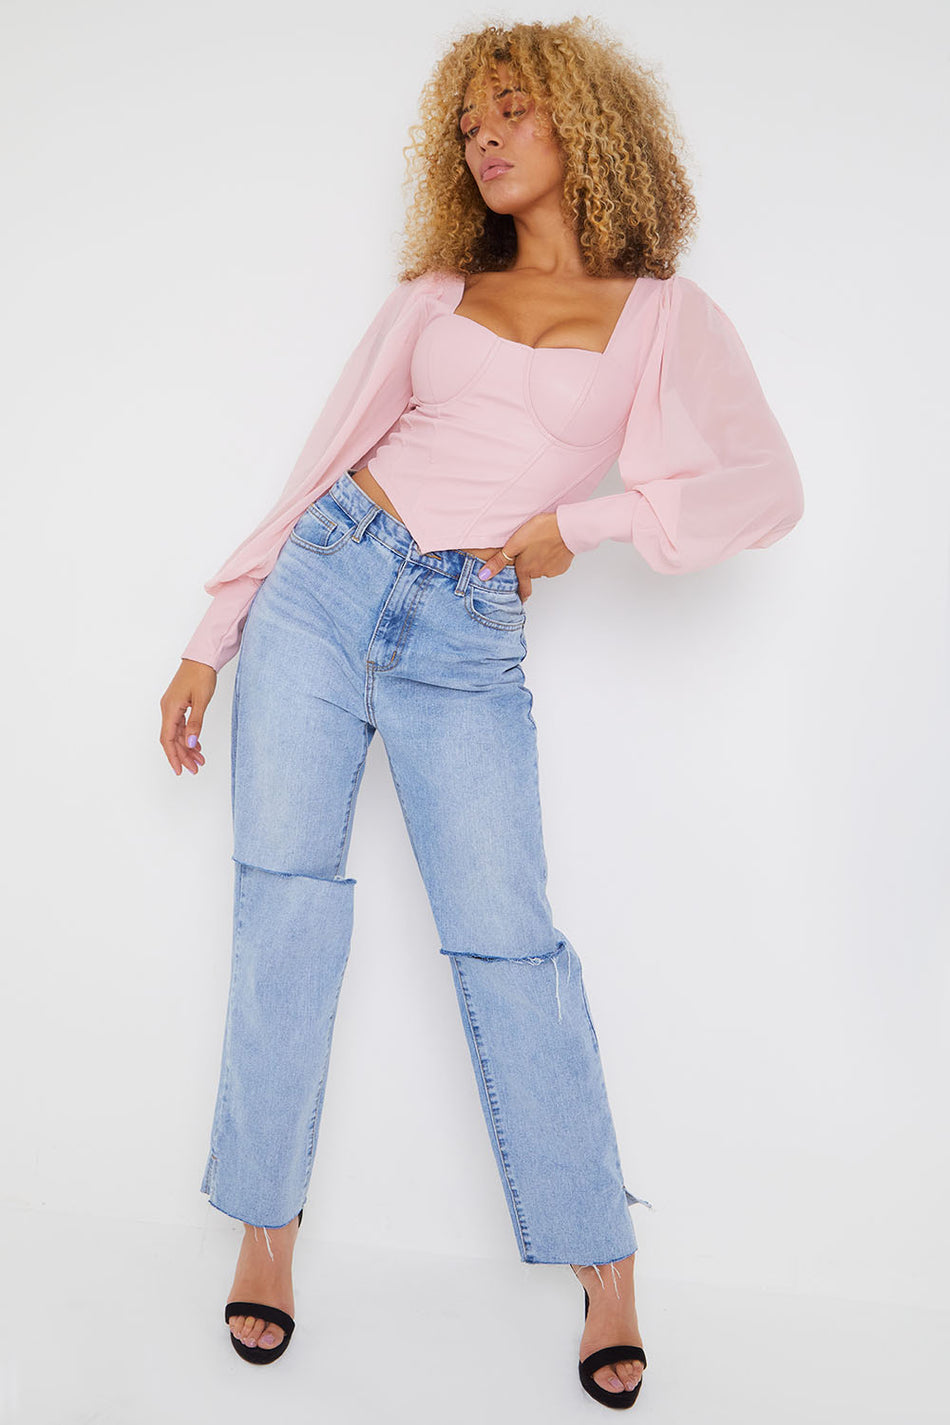 Baby Pink PU Corset Top WIth Sheer Puff Sleeves